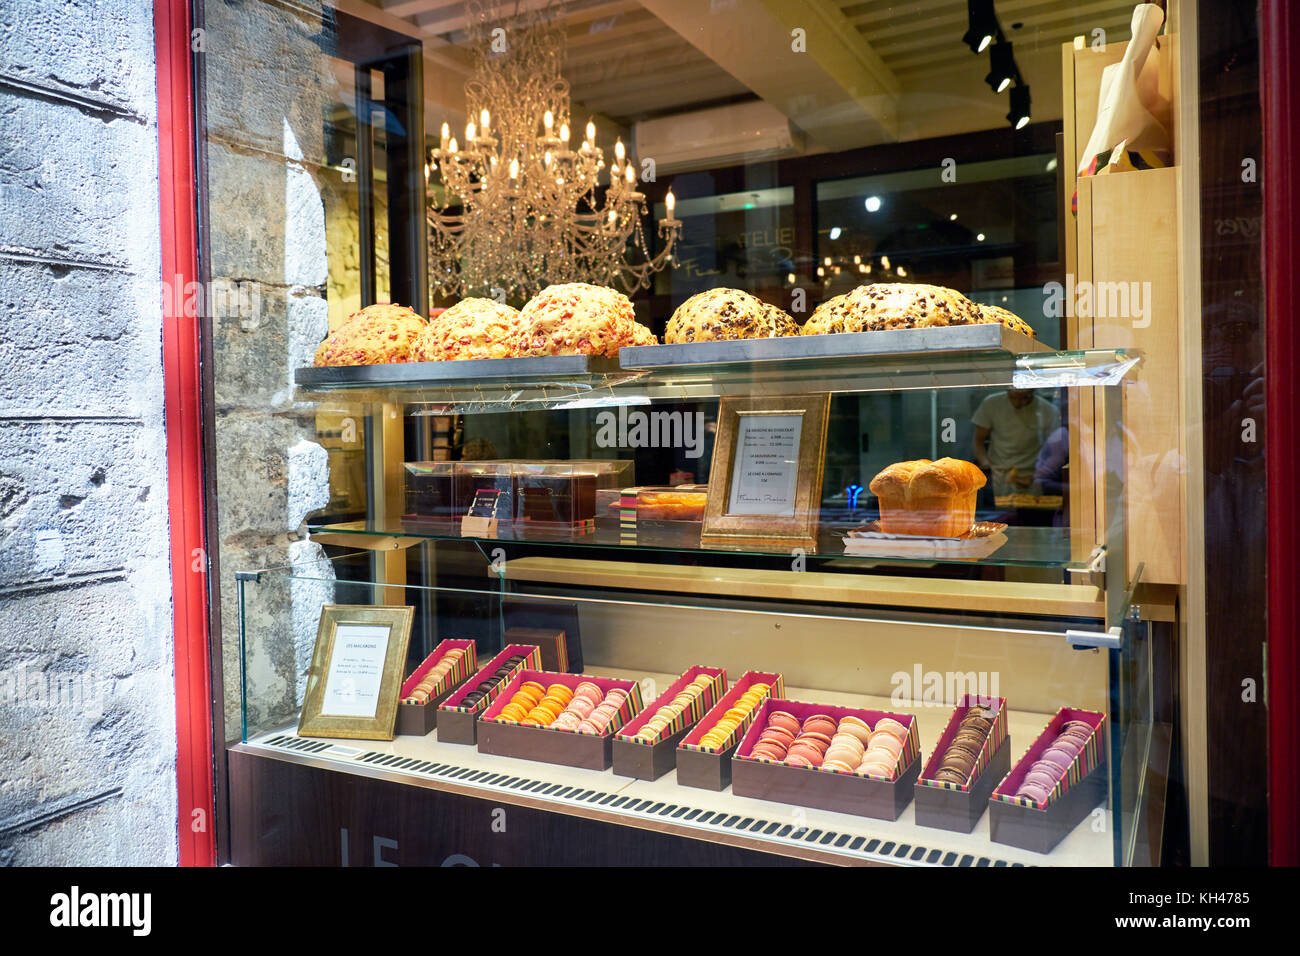 French Pastry Shop Shop Window, Lyon, France - Stock Image